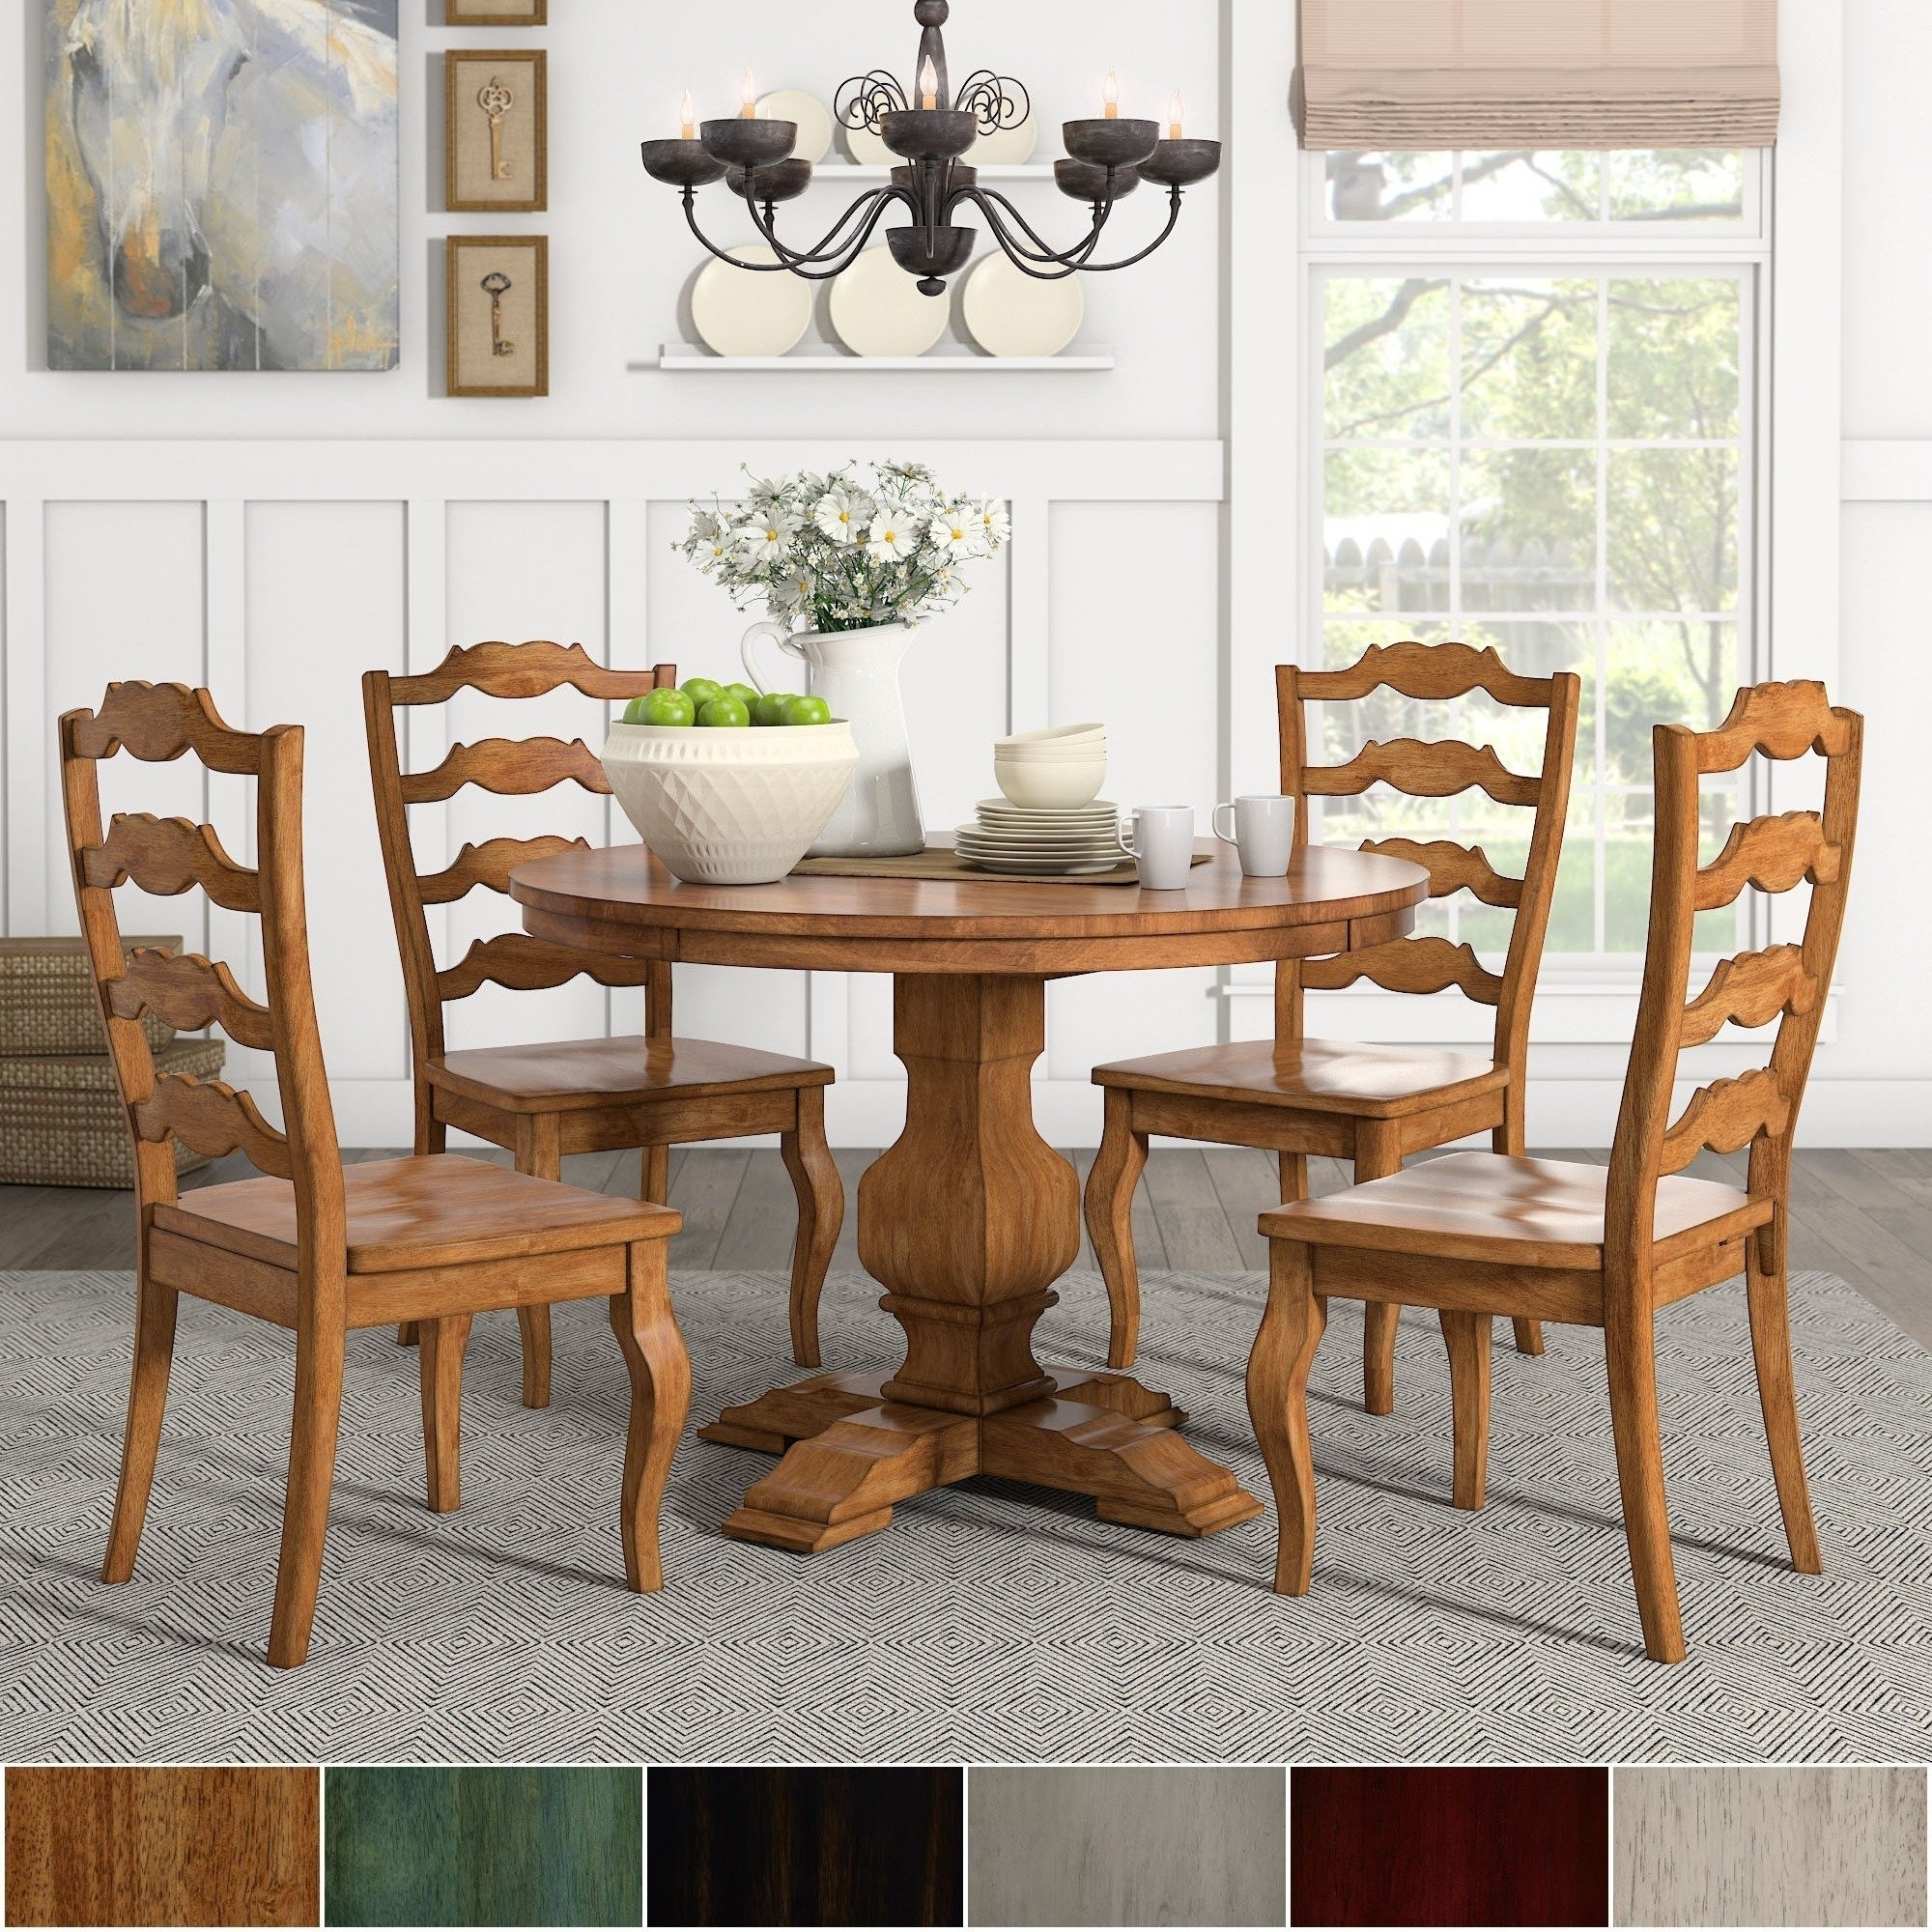 Eleanor Oak Round Soild Wood Top Ladder Back 5 Piece Dining Set Intended For Recent Caden 5 Piece Round Dining Sets (Photo 8 of 20)